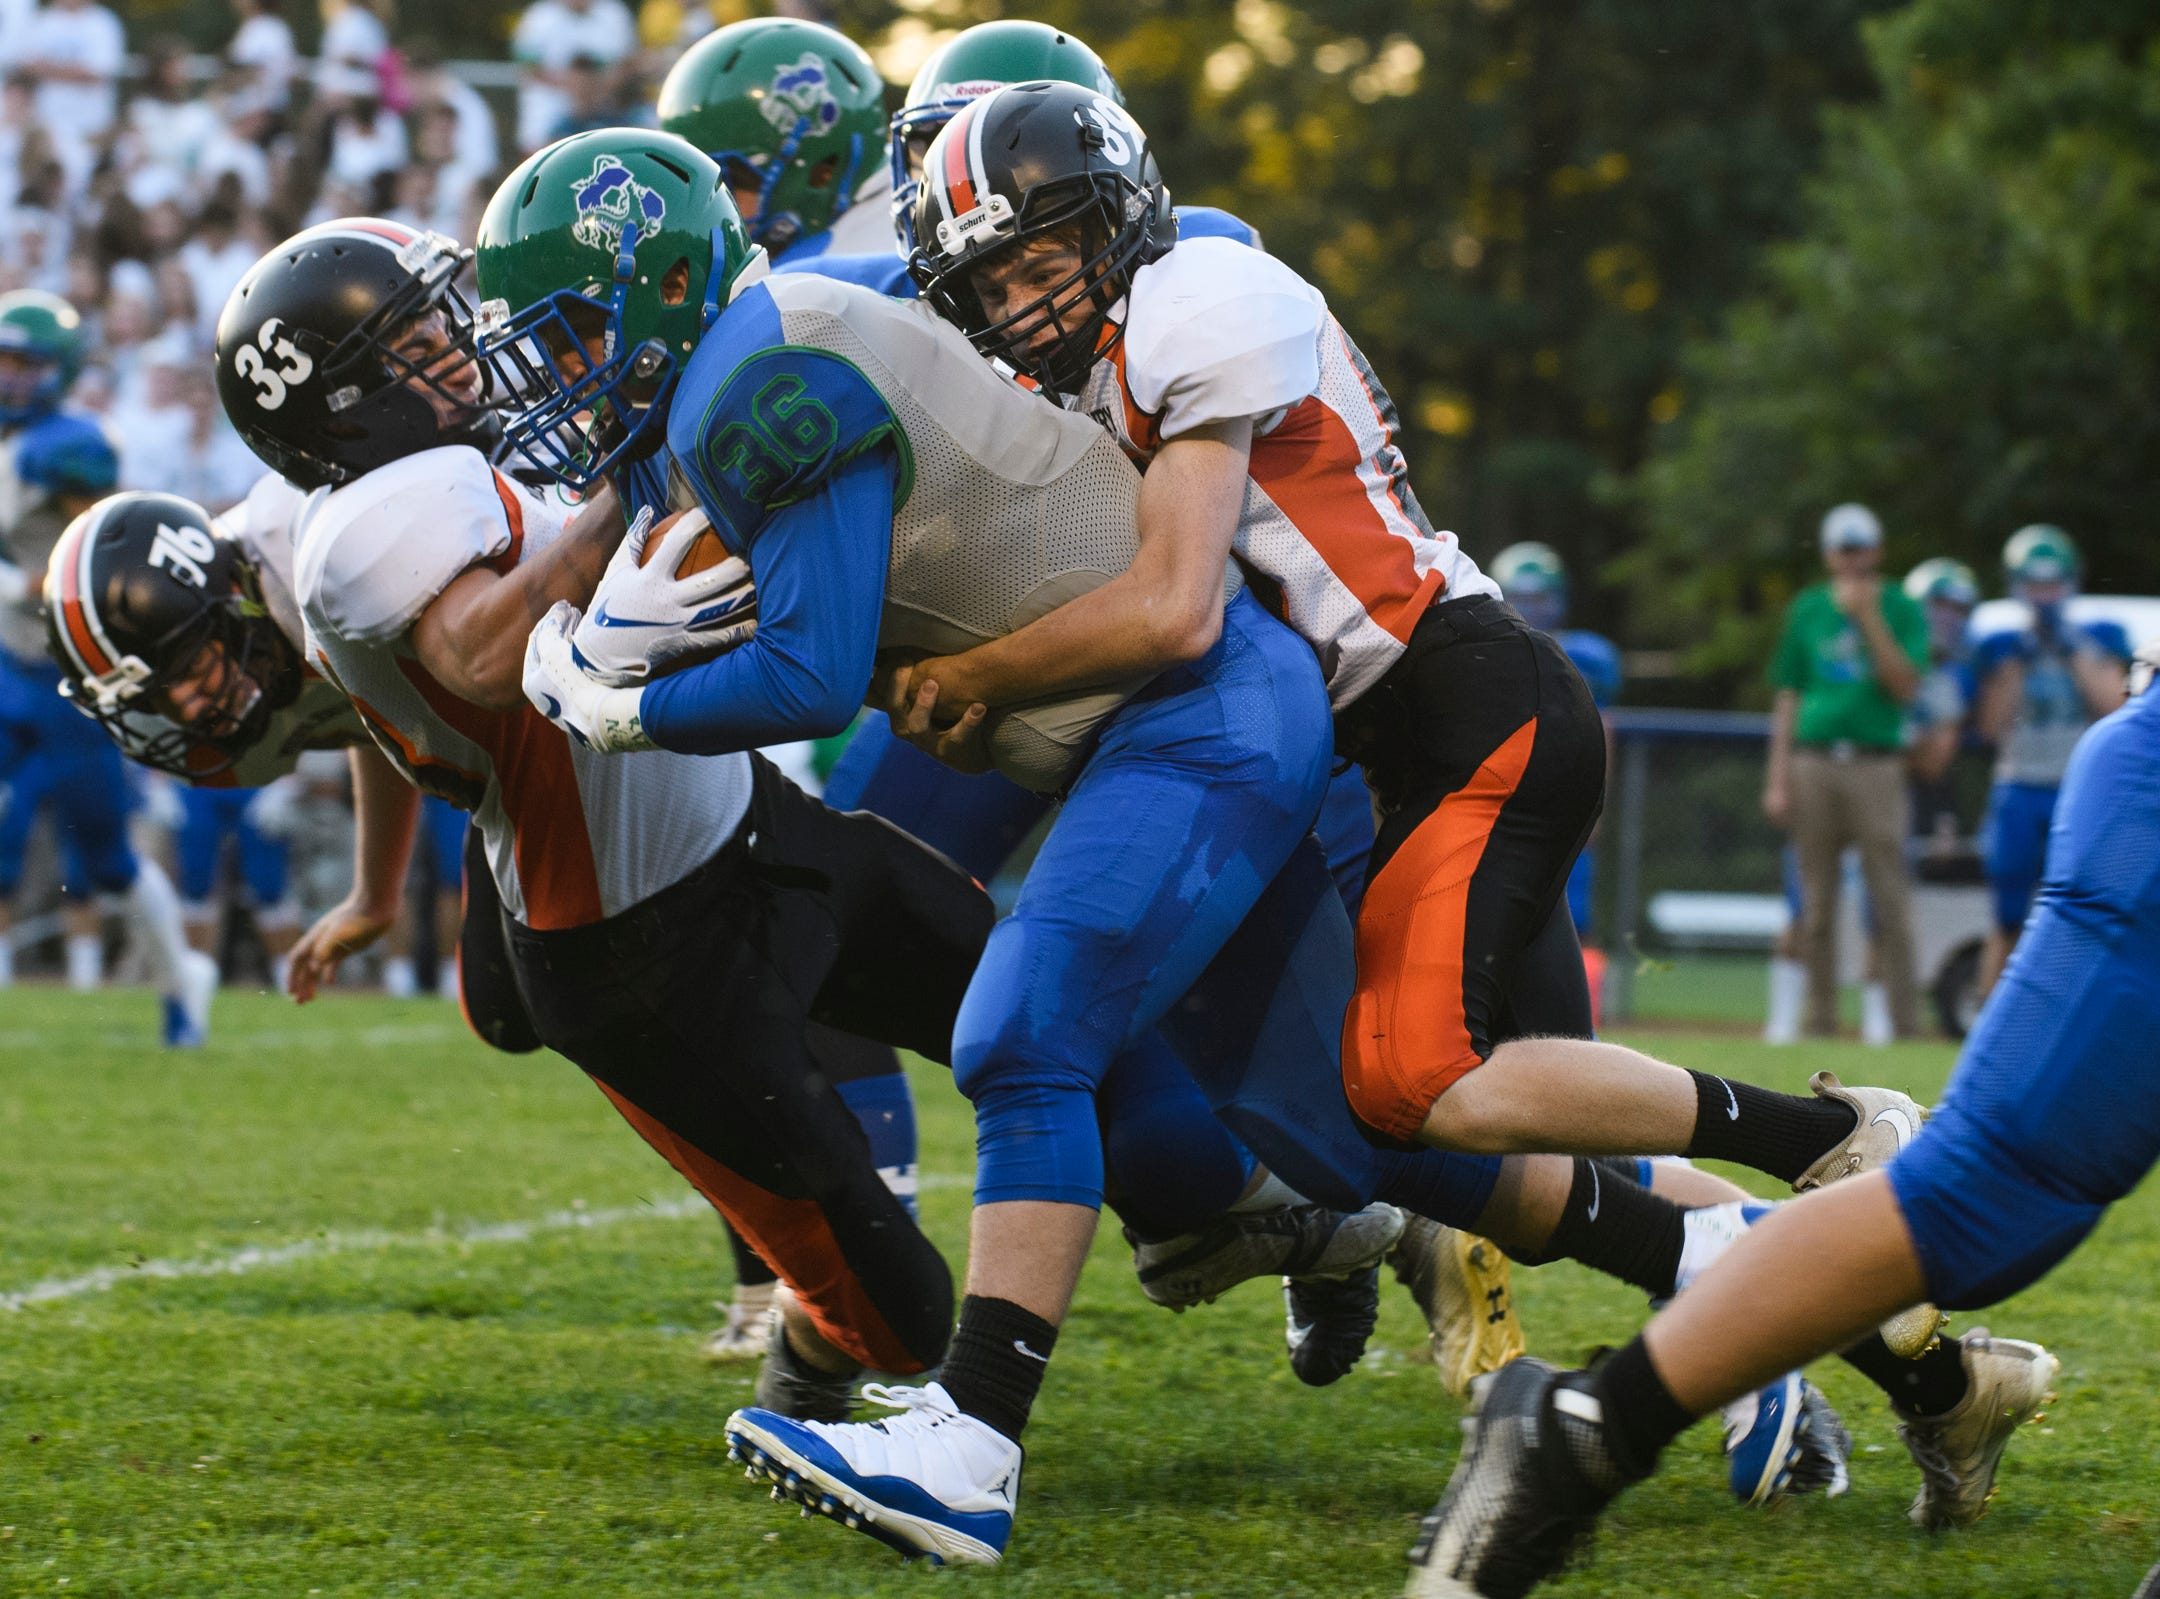 Middlebury's Wyatt Cameron (89) tackles Colchester s Charlie Cusson-Ducharme (36) during the boys high school football game between Middlebury and Colchester at Colchester high school on Friday night August 31, 2018 in Colchester.